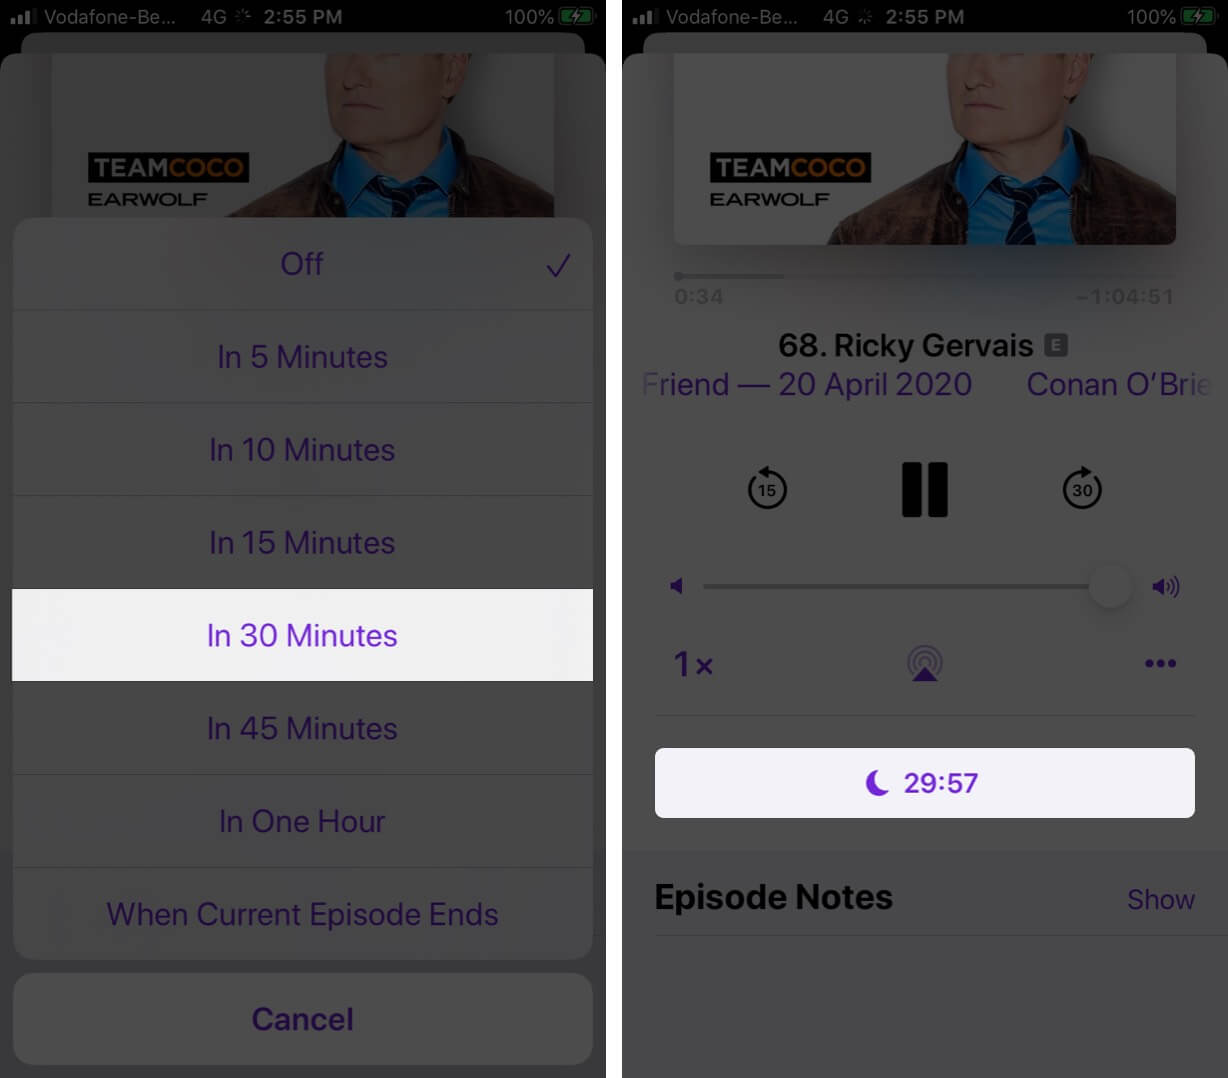 Set Sleep TImer on Podcasts App on iPhone